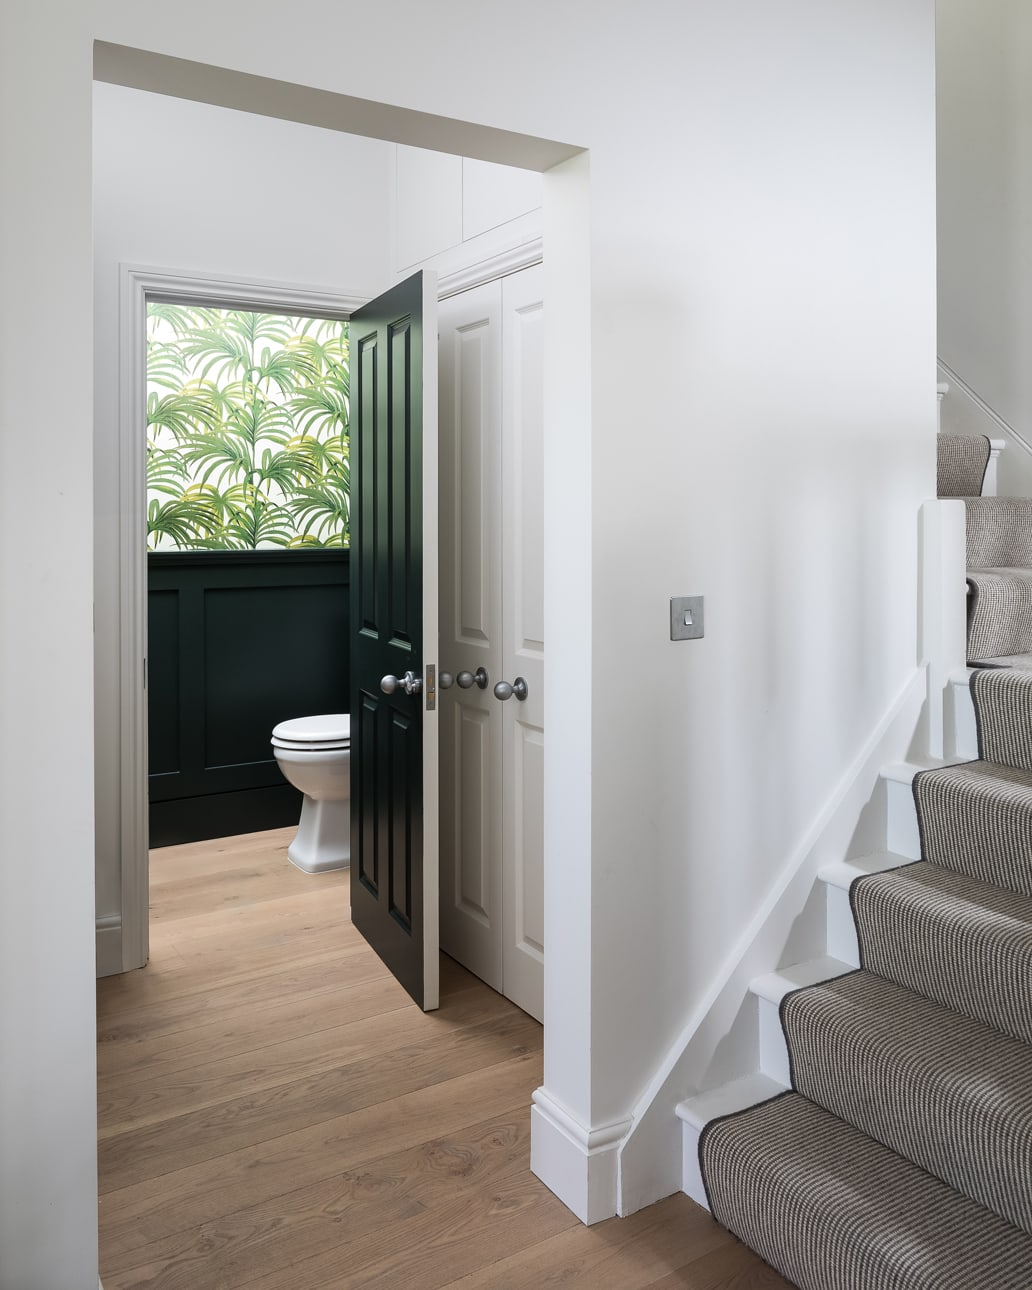 View into Lowther green bathroom and stairs